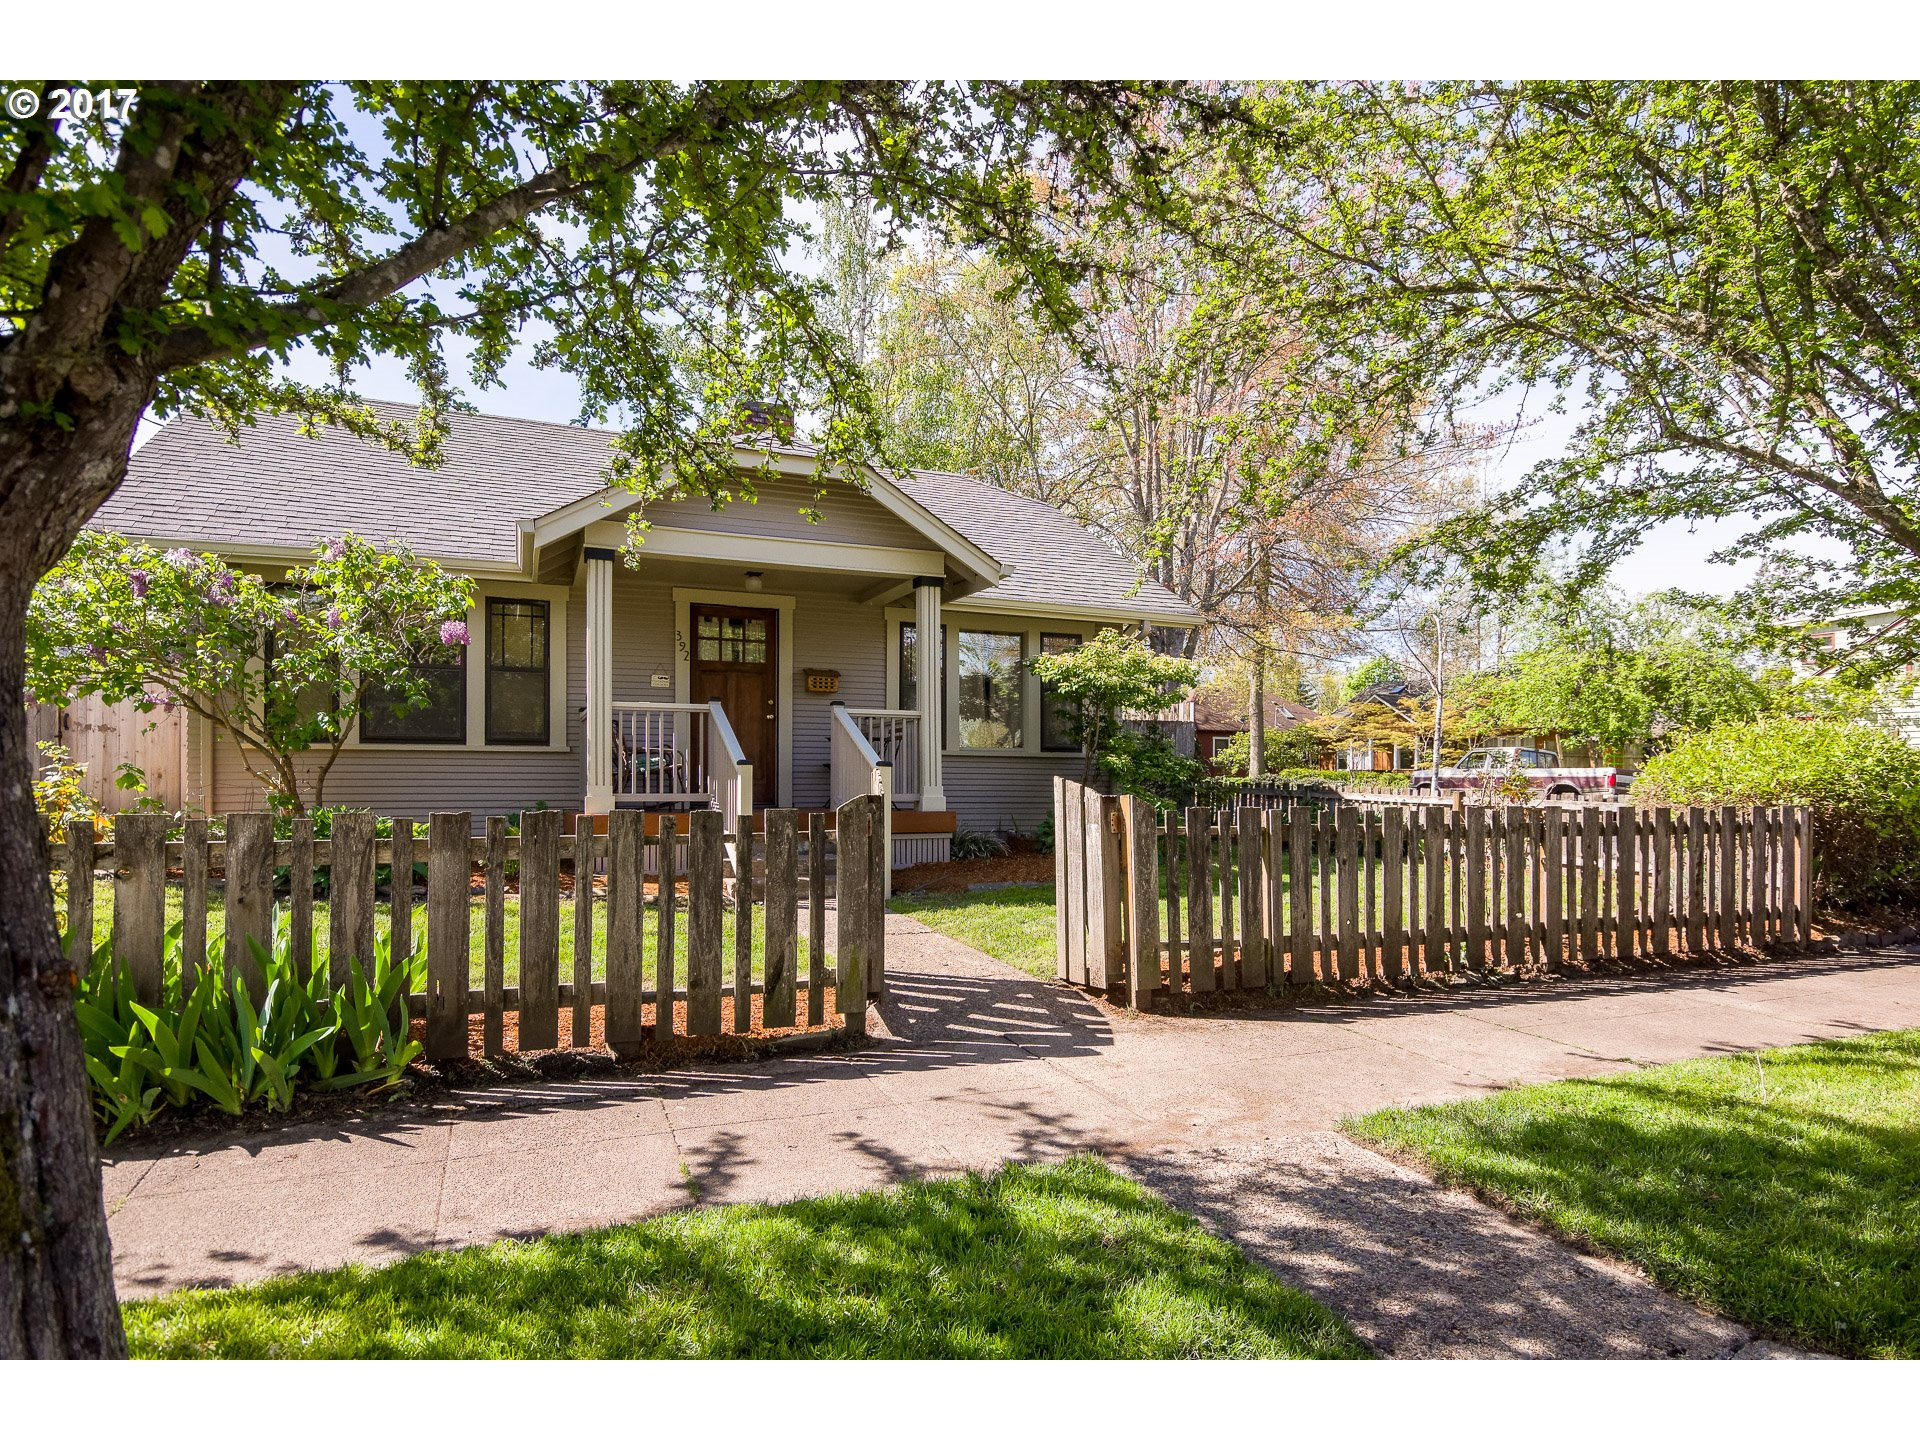 392 W 17TH AVE, Eugene, OR 97401